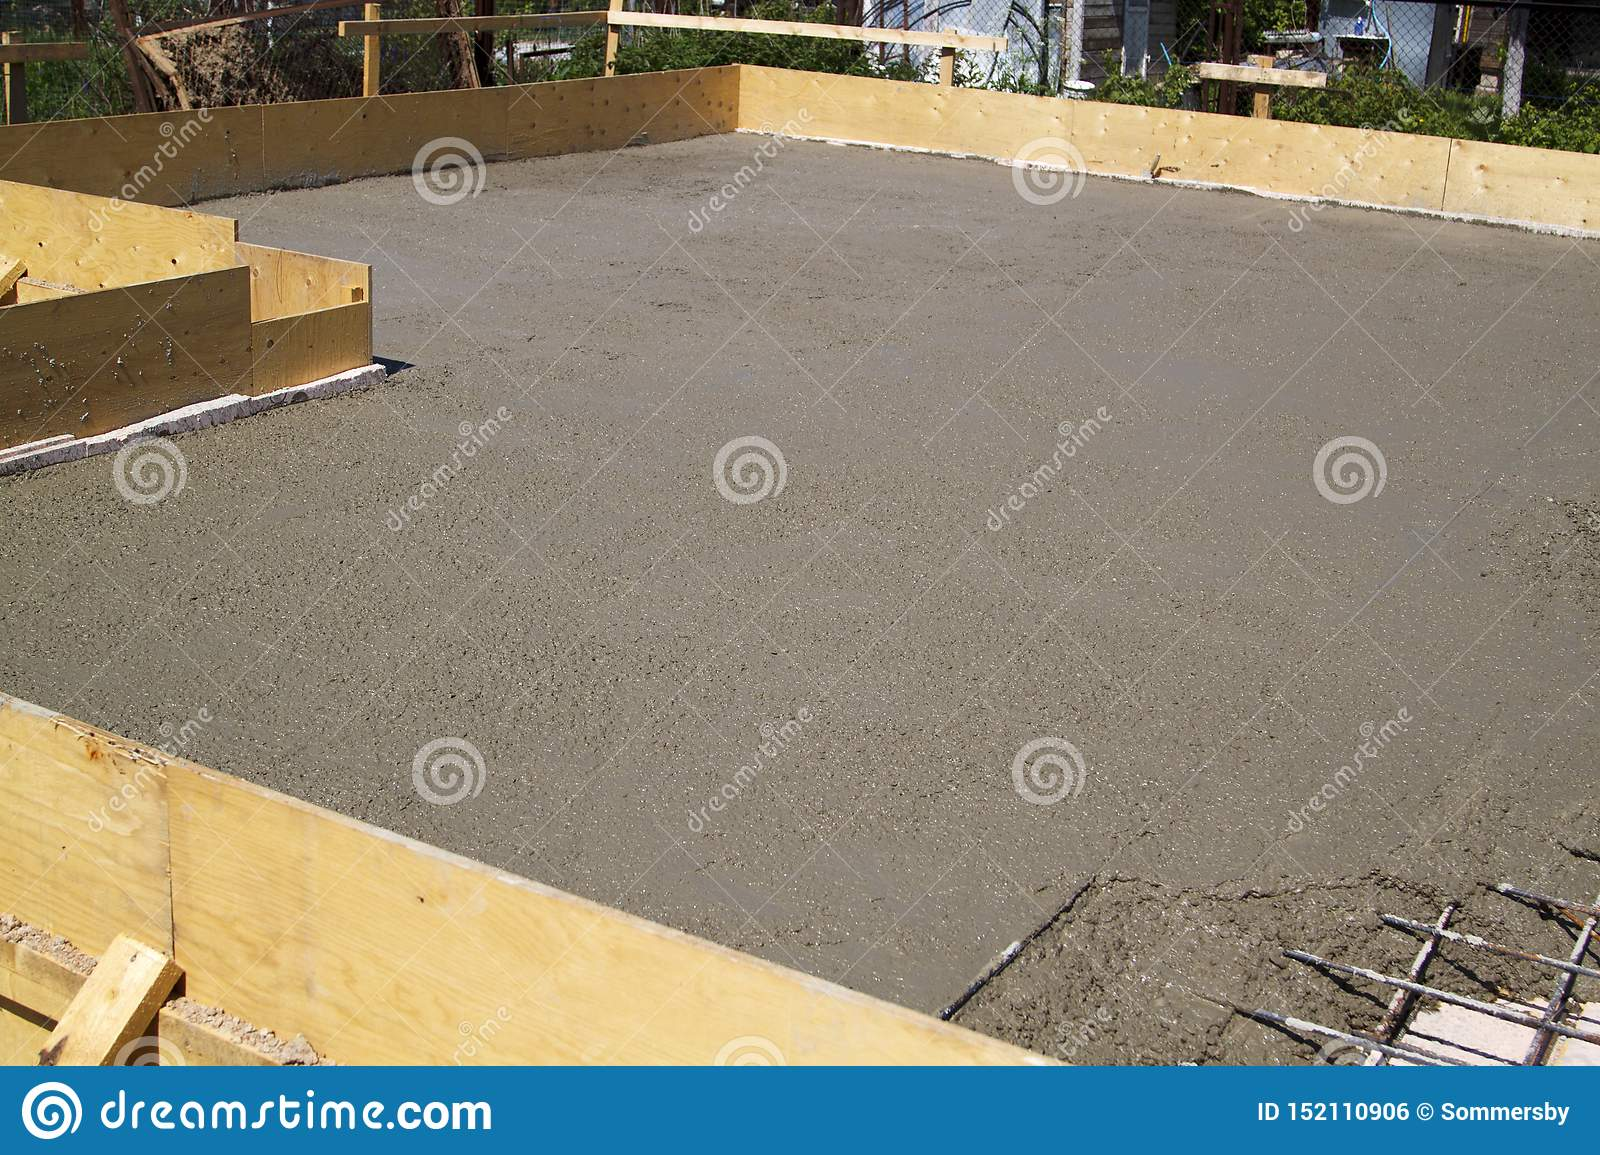 Concrete Slab Of Foundation With Wooden Formwork Stock Photo Image Of Drain Growth 152110906